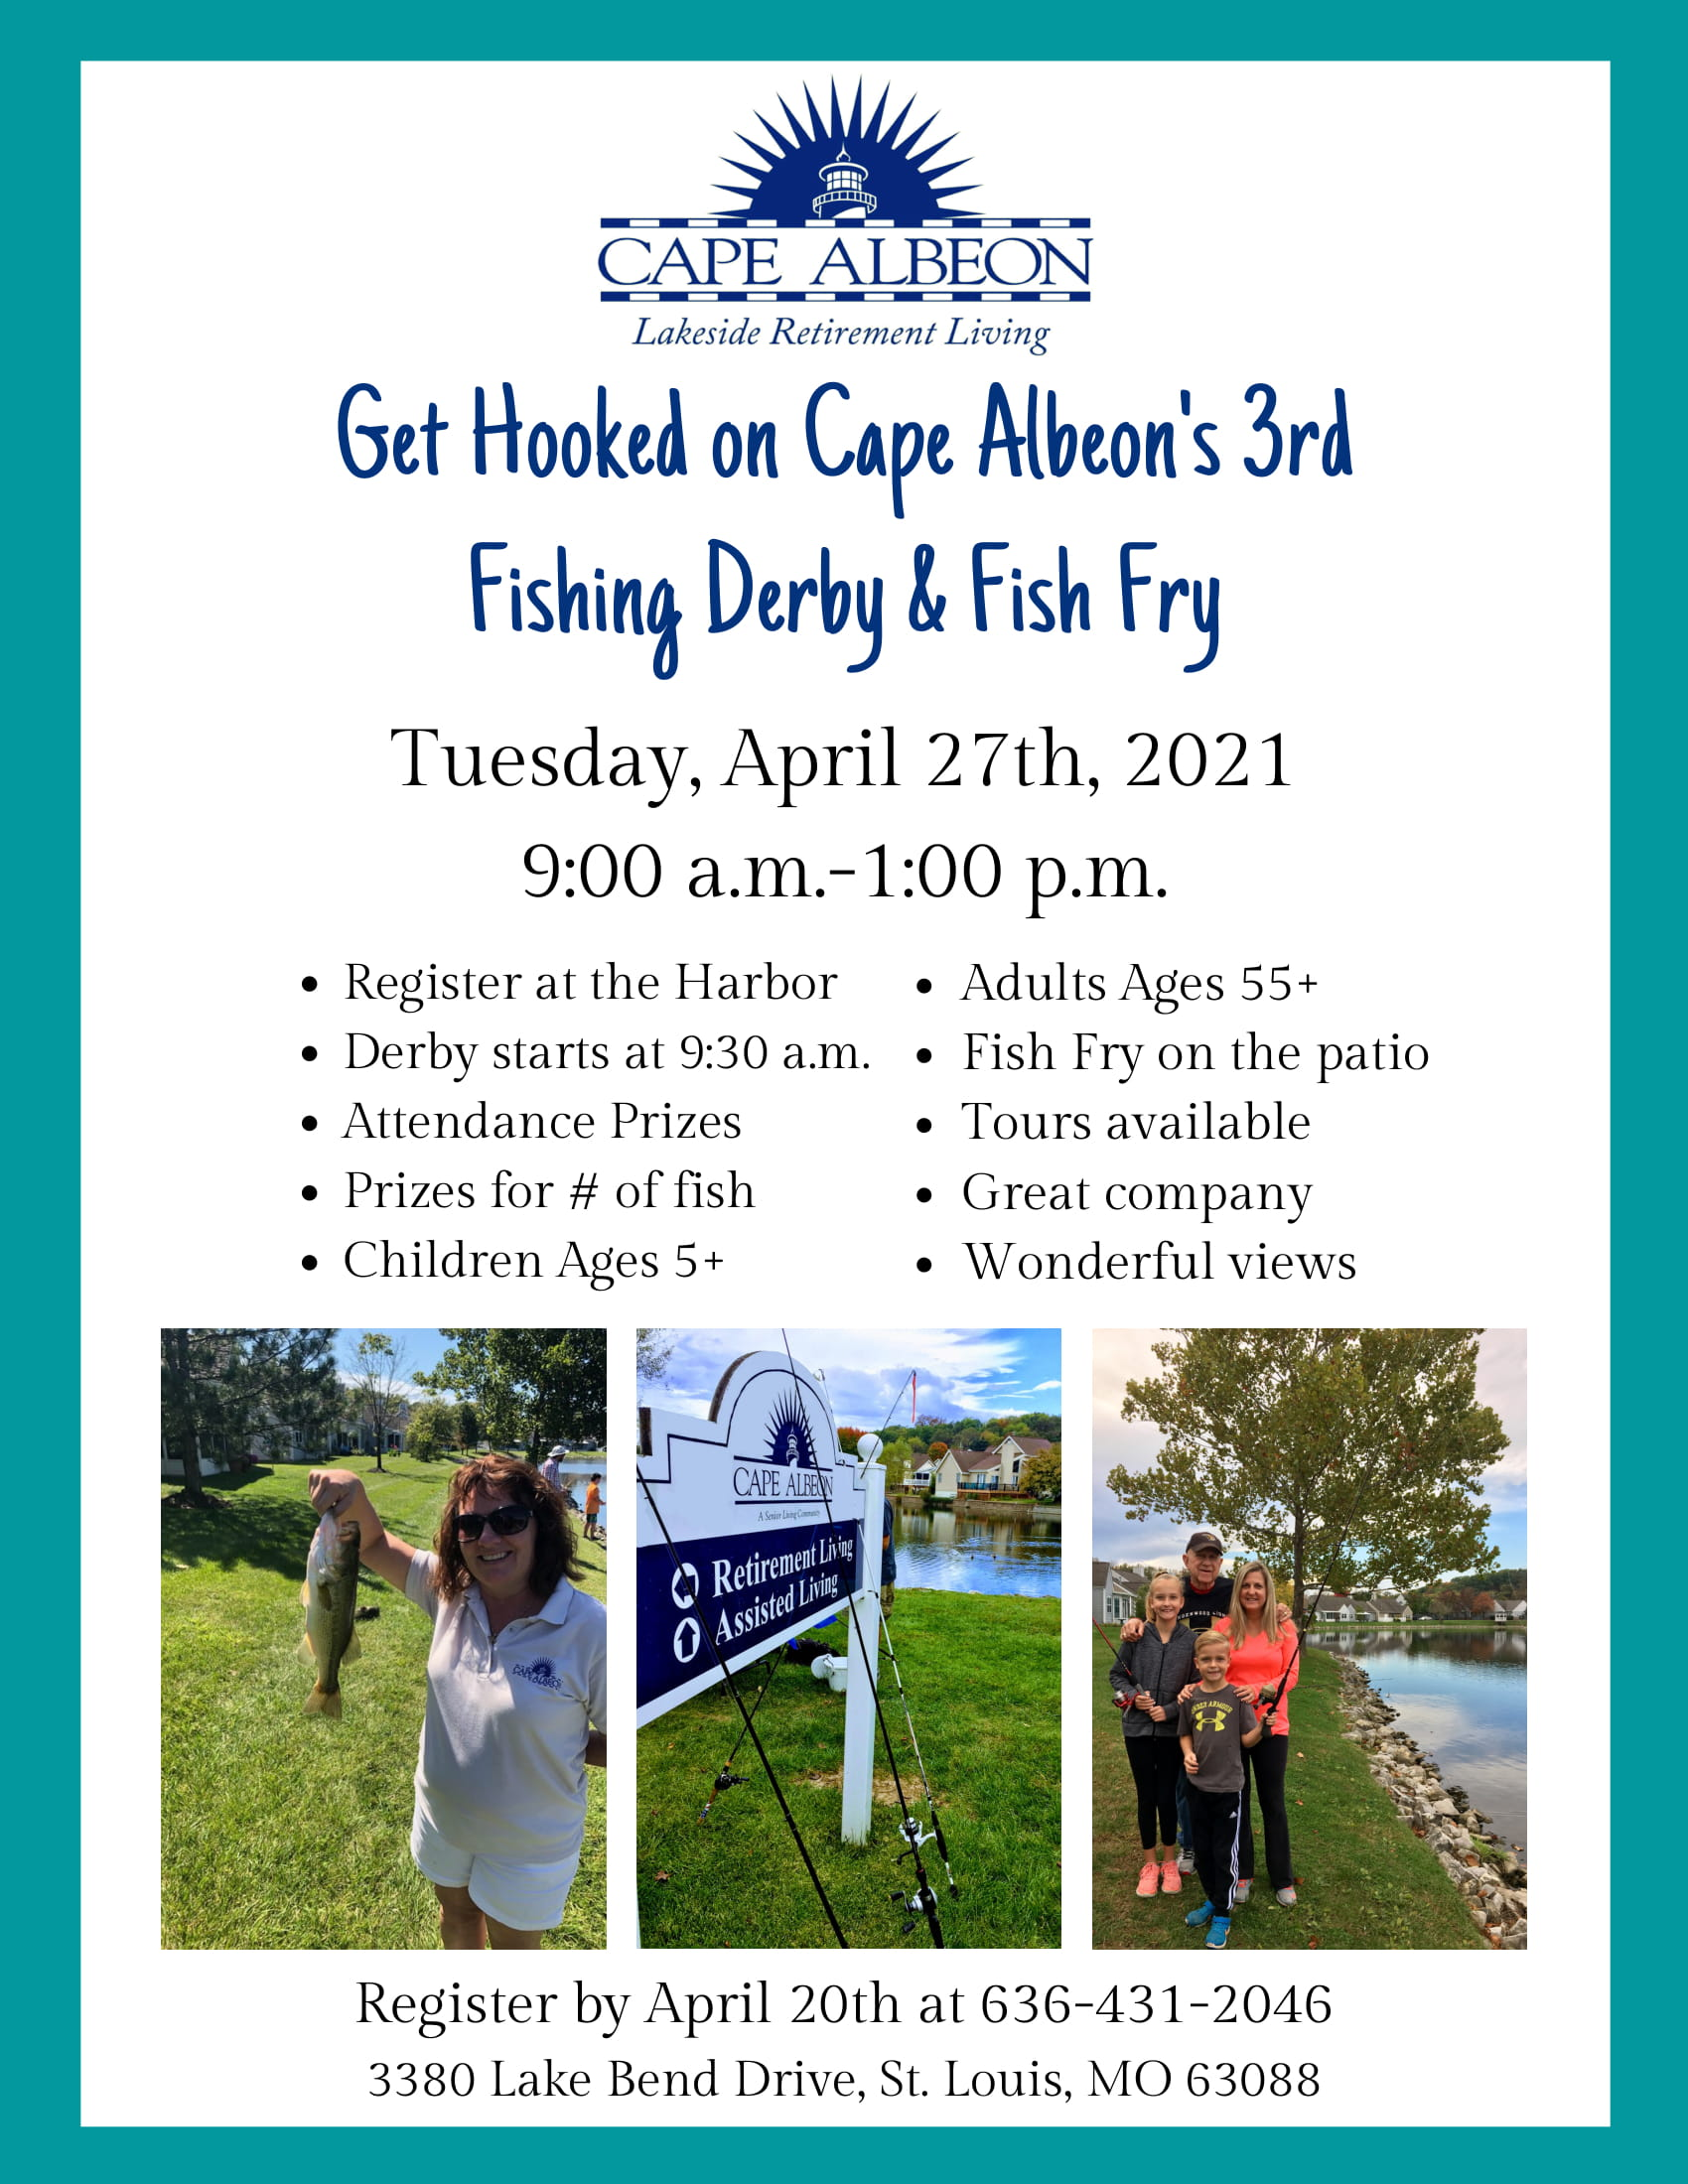 Cape Albeon hosts 3rd Fishing Derby & Fish Fry St. Louis